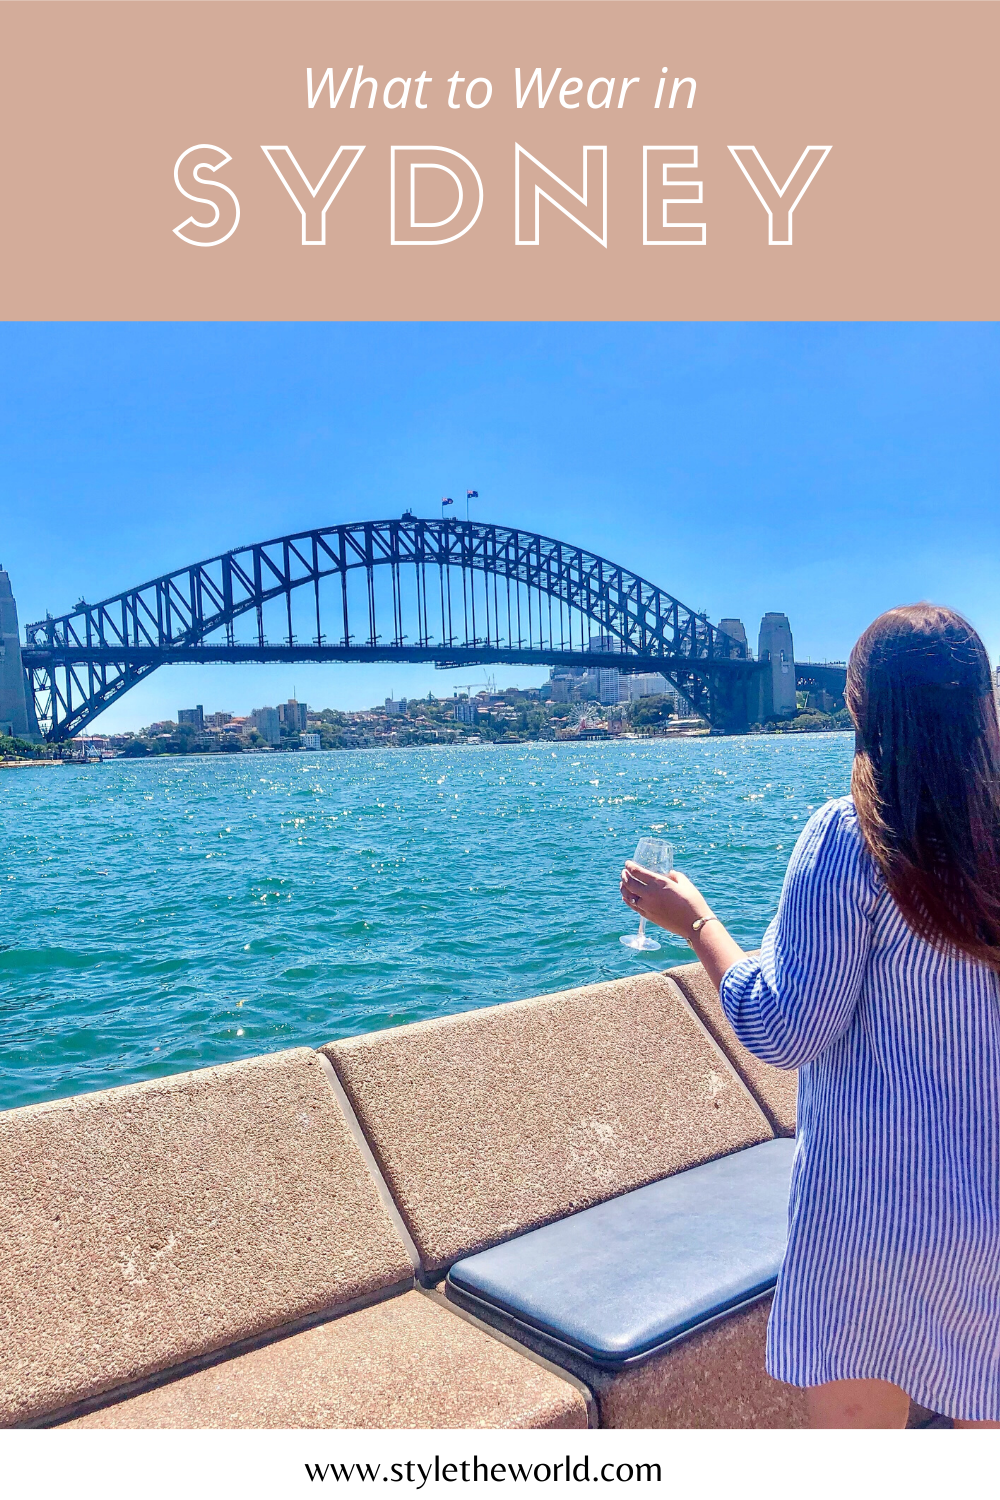 Sydney Style Inspiration | Sydney Packing List | What to Wear in Sydney, Australia |  by Style the World | #travelaustralia #visitsydney #travelstyle #styleinspiration